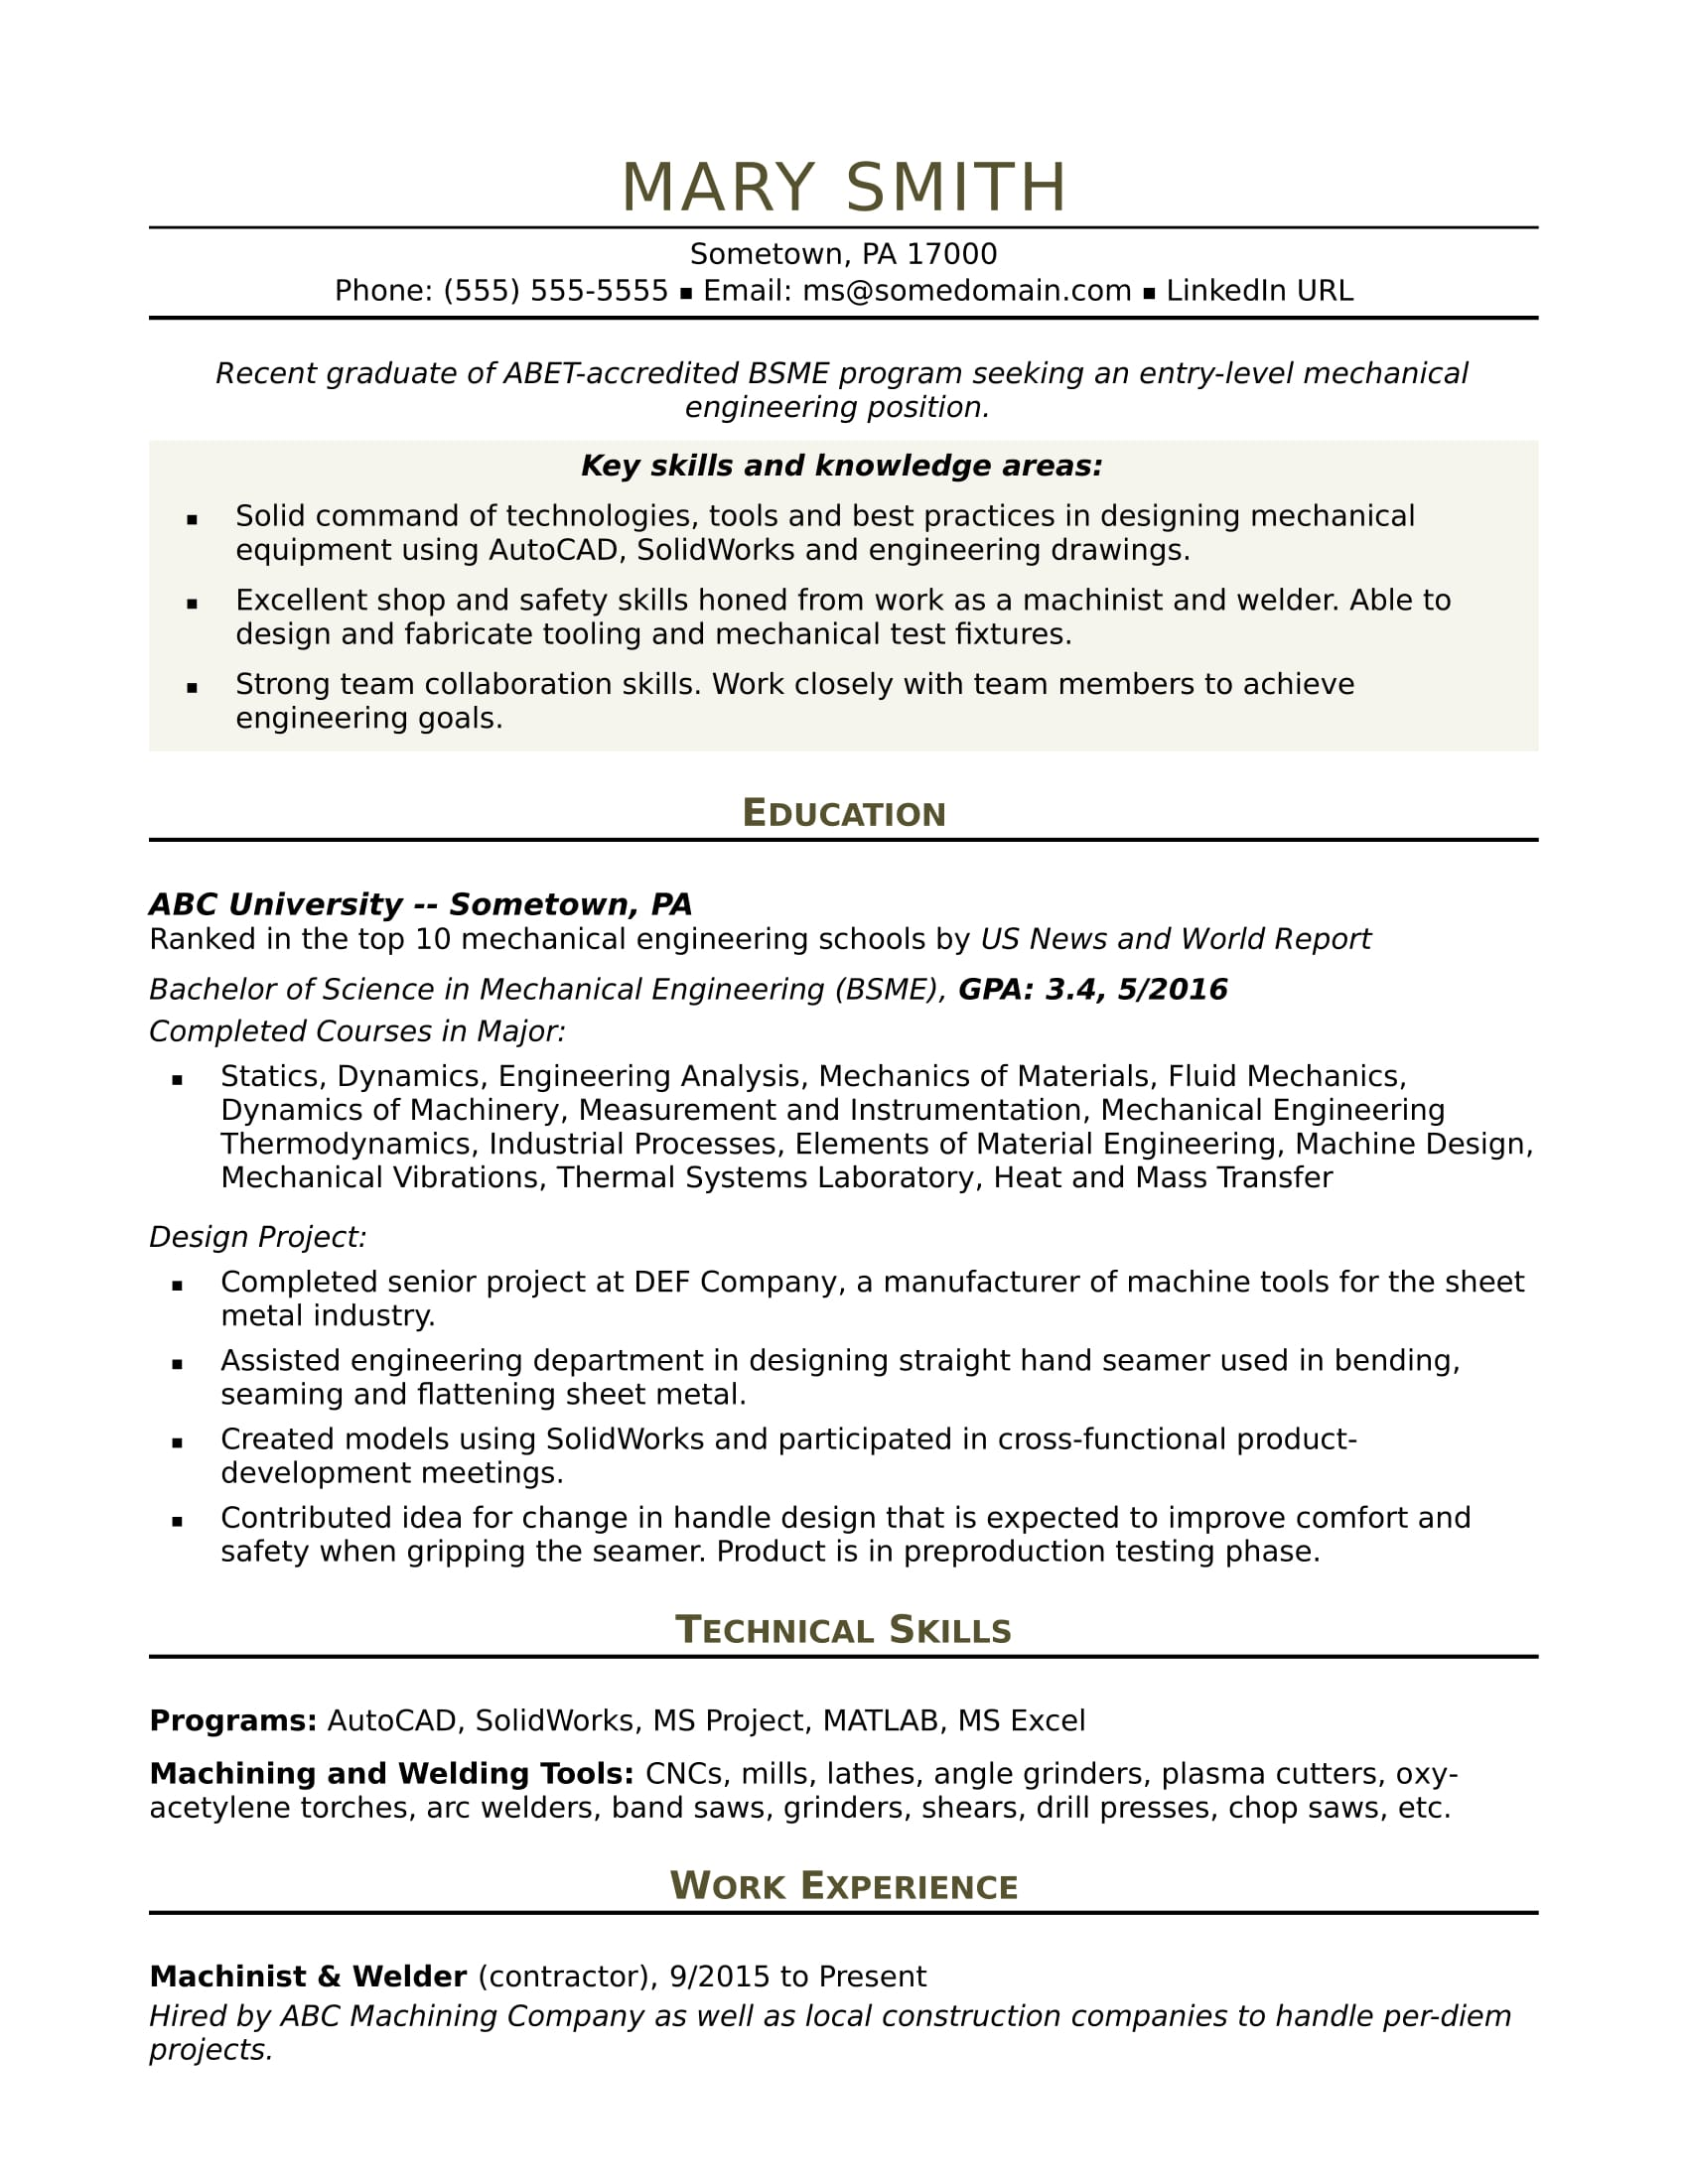 sample resume for an entry level mechanical engineer - Entry Level Engineering Resume